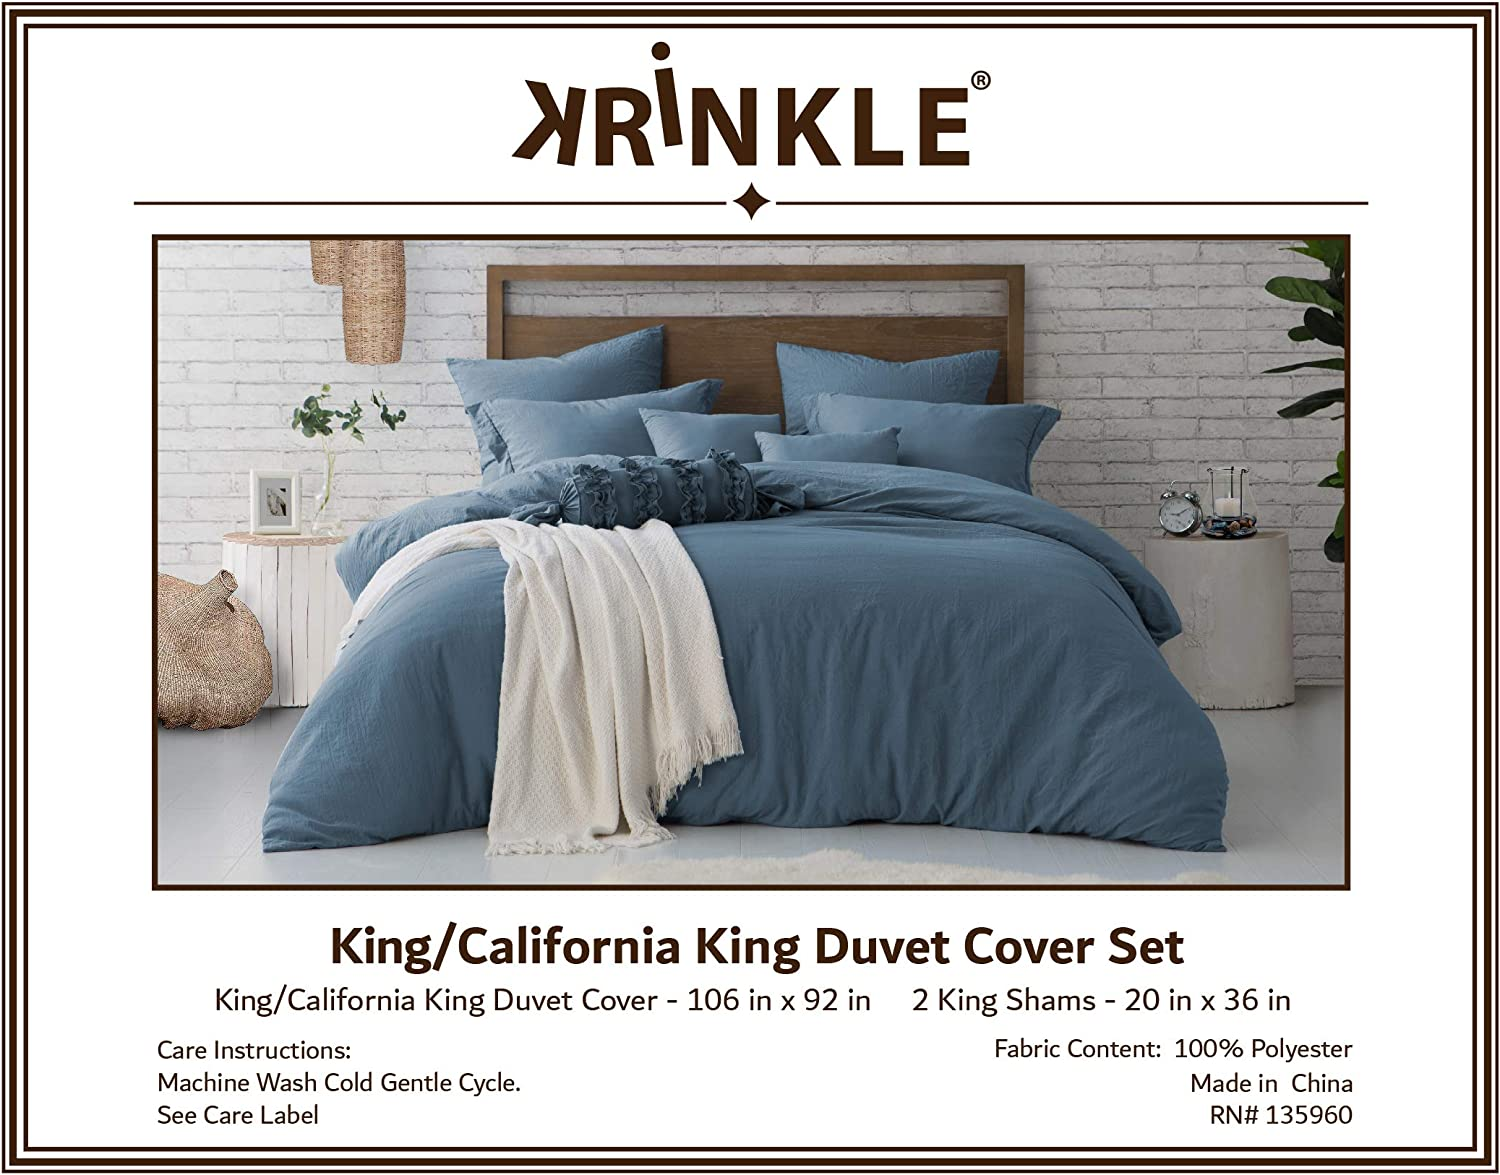 1 Duvet Cover with Zipper Closure /& 1 Pillow Sham Premium Hotel Quality Bed Set Twin//Twin XL Ultra-Soft /& Hypoallergenic Swift Home Microfiber Washed Crinkle Duvet Cover /& Sham Blue Dusk